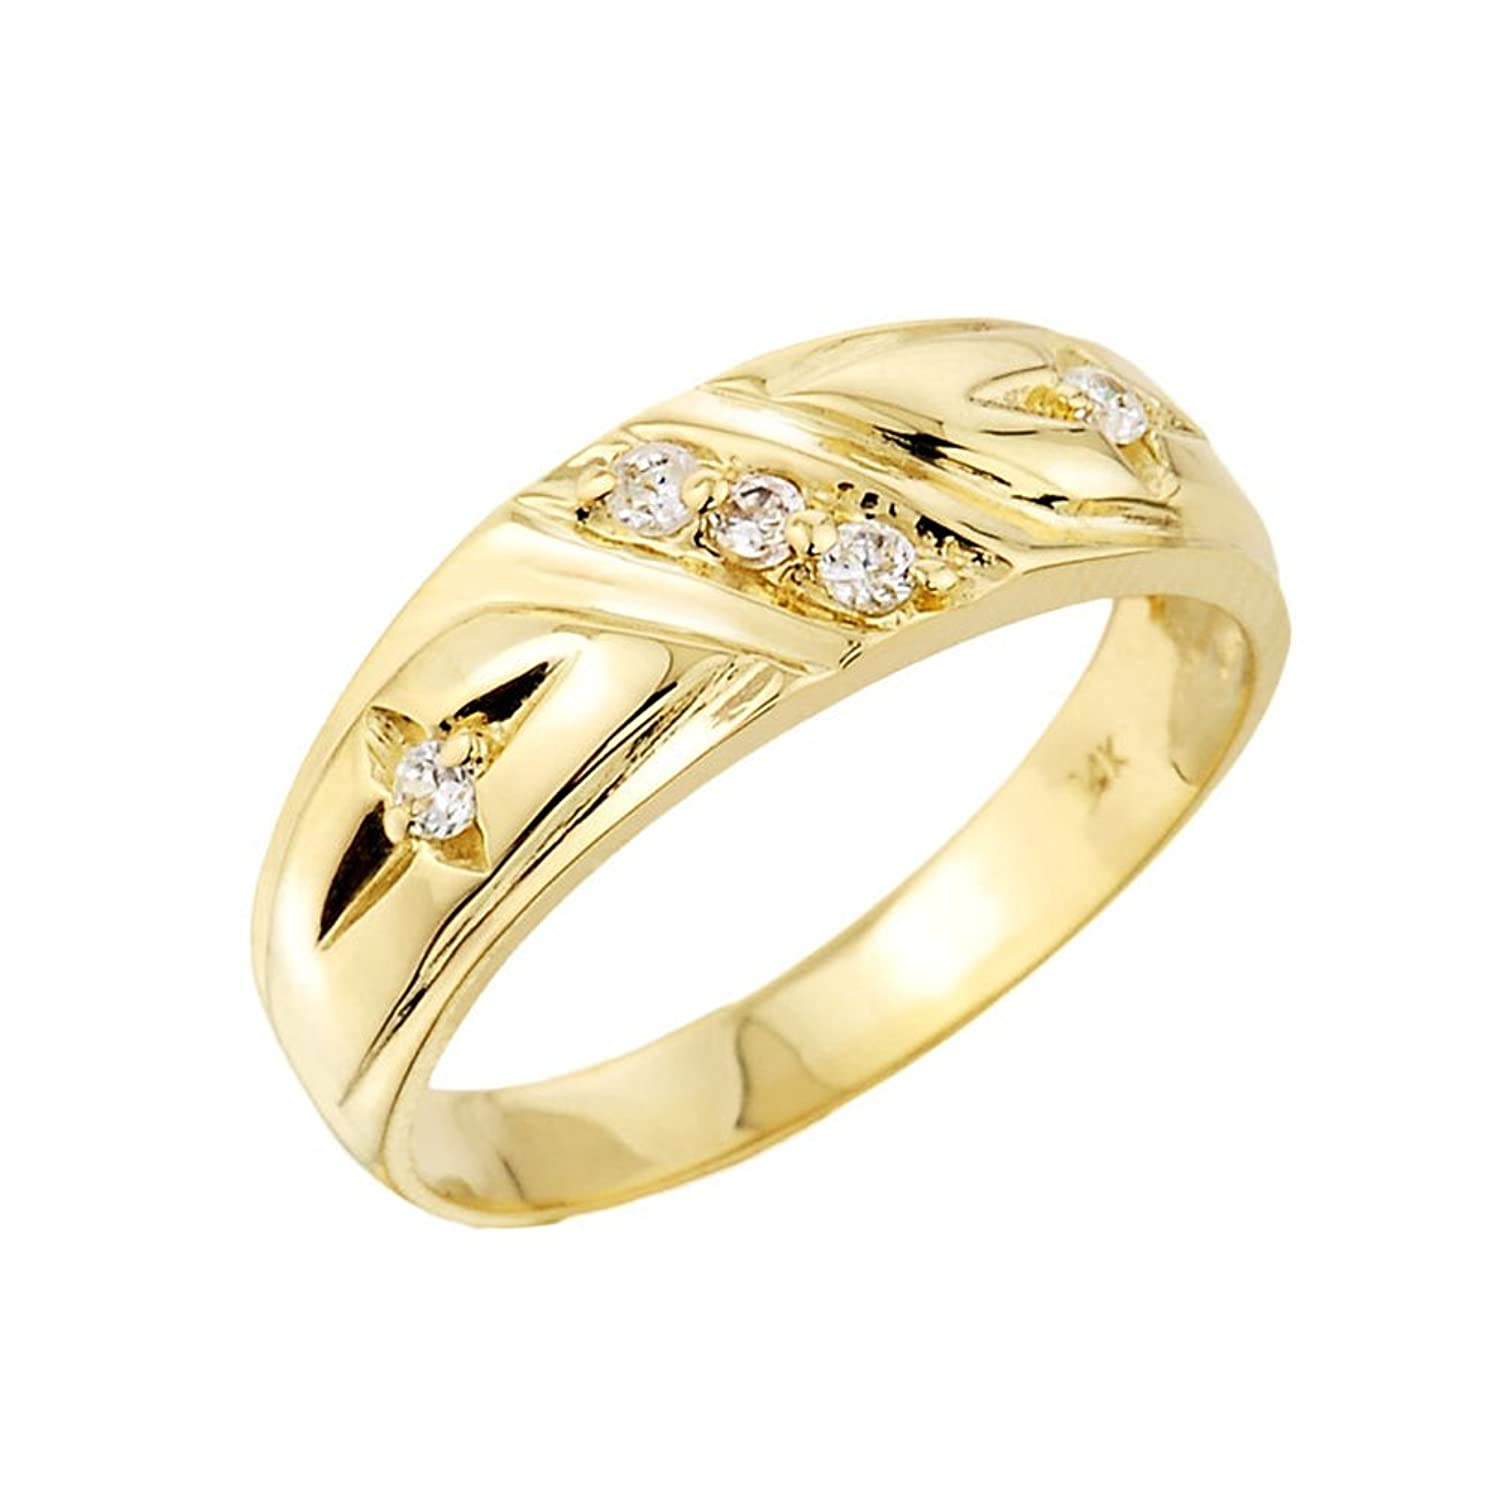 Mens 10k Yellow Gold 5 Stone Diamond Wedding Ring Band